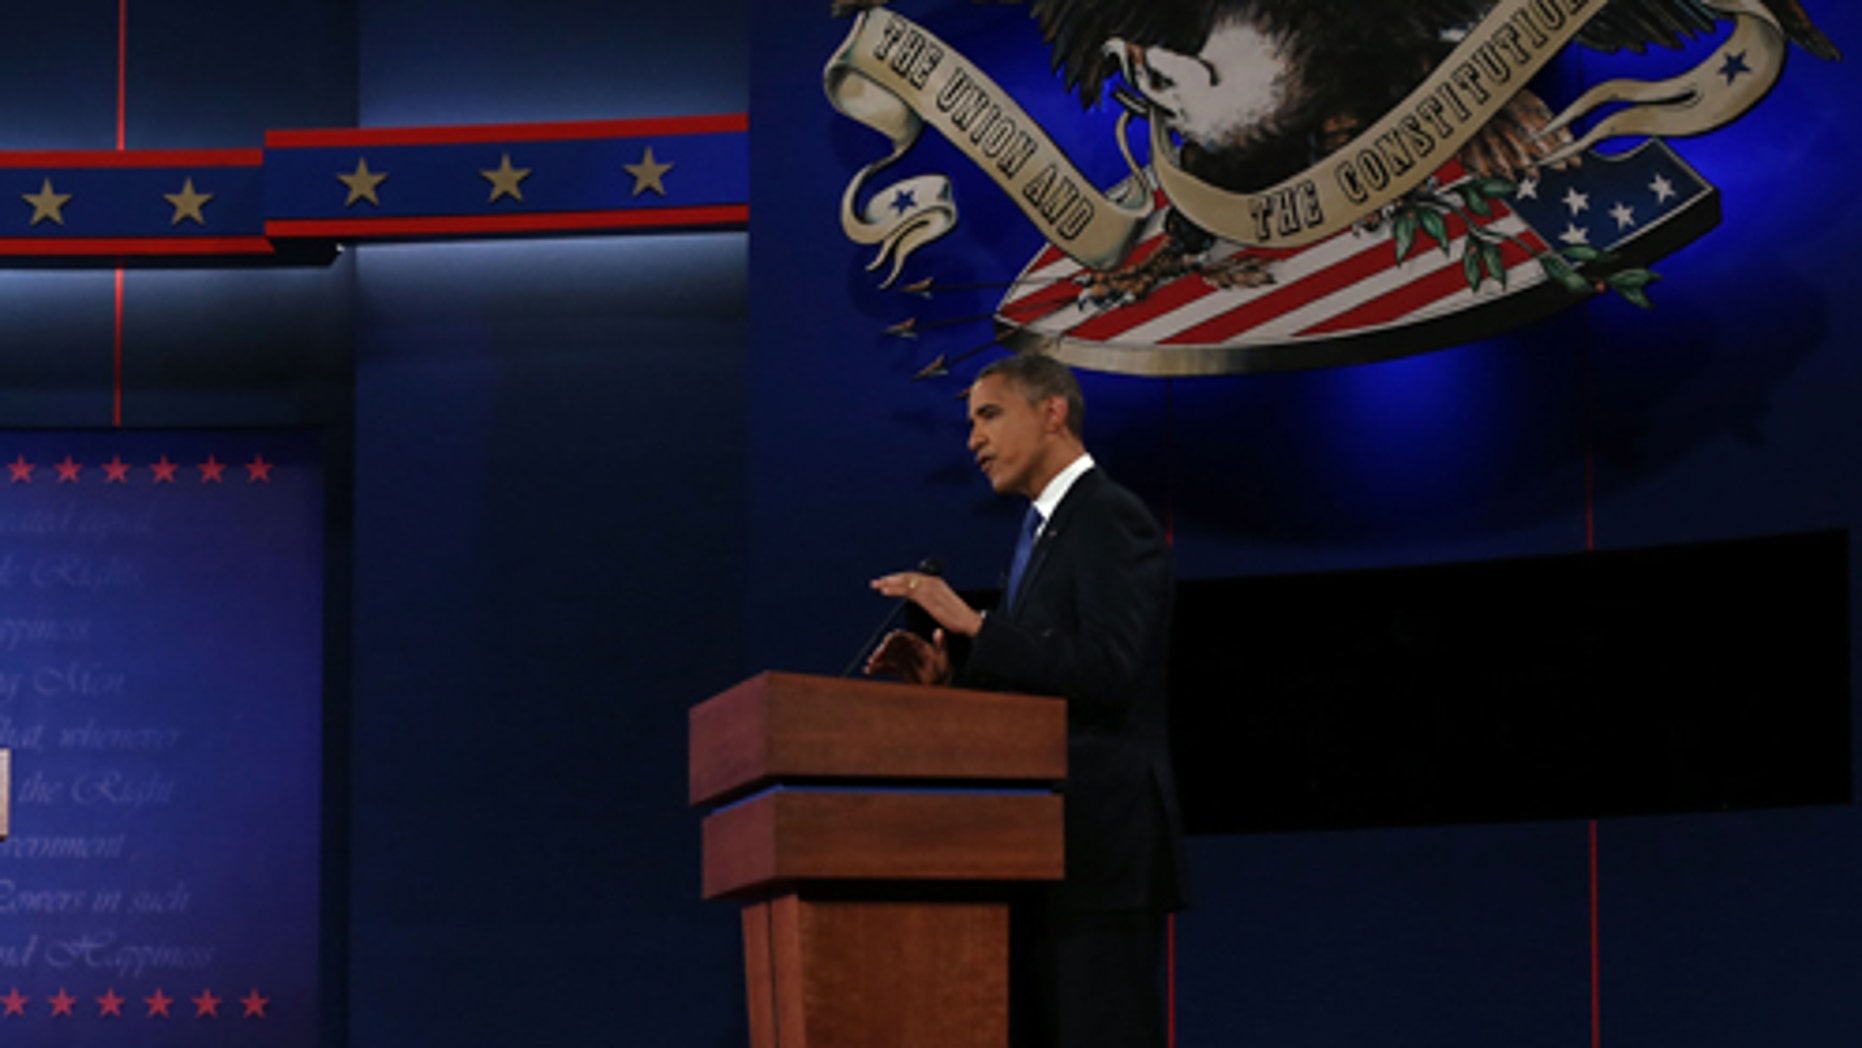 DENVER, CO - OCTOBER 03:  Democratic presidential candidate, U.S. President Barack Obama (R) speaks as Republican presidential candidate, former Massachusetts Gov. Mitt Romney listens during the Presidential Debate at the University of Denver on October 3, 2012 in Denver, Colorado. The first of four debates for the 2012 Election, three Presidential and one Vice Presidential, is moderated by PBS's Jim Lehrer and focuses on domestic issues:  the economy, health care, and the role of government.  (Photo by Justin Sullivan/Getty Images)